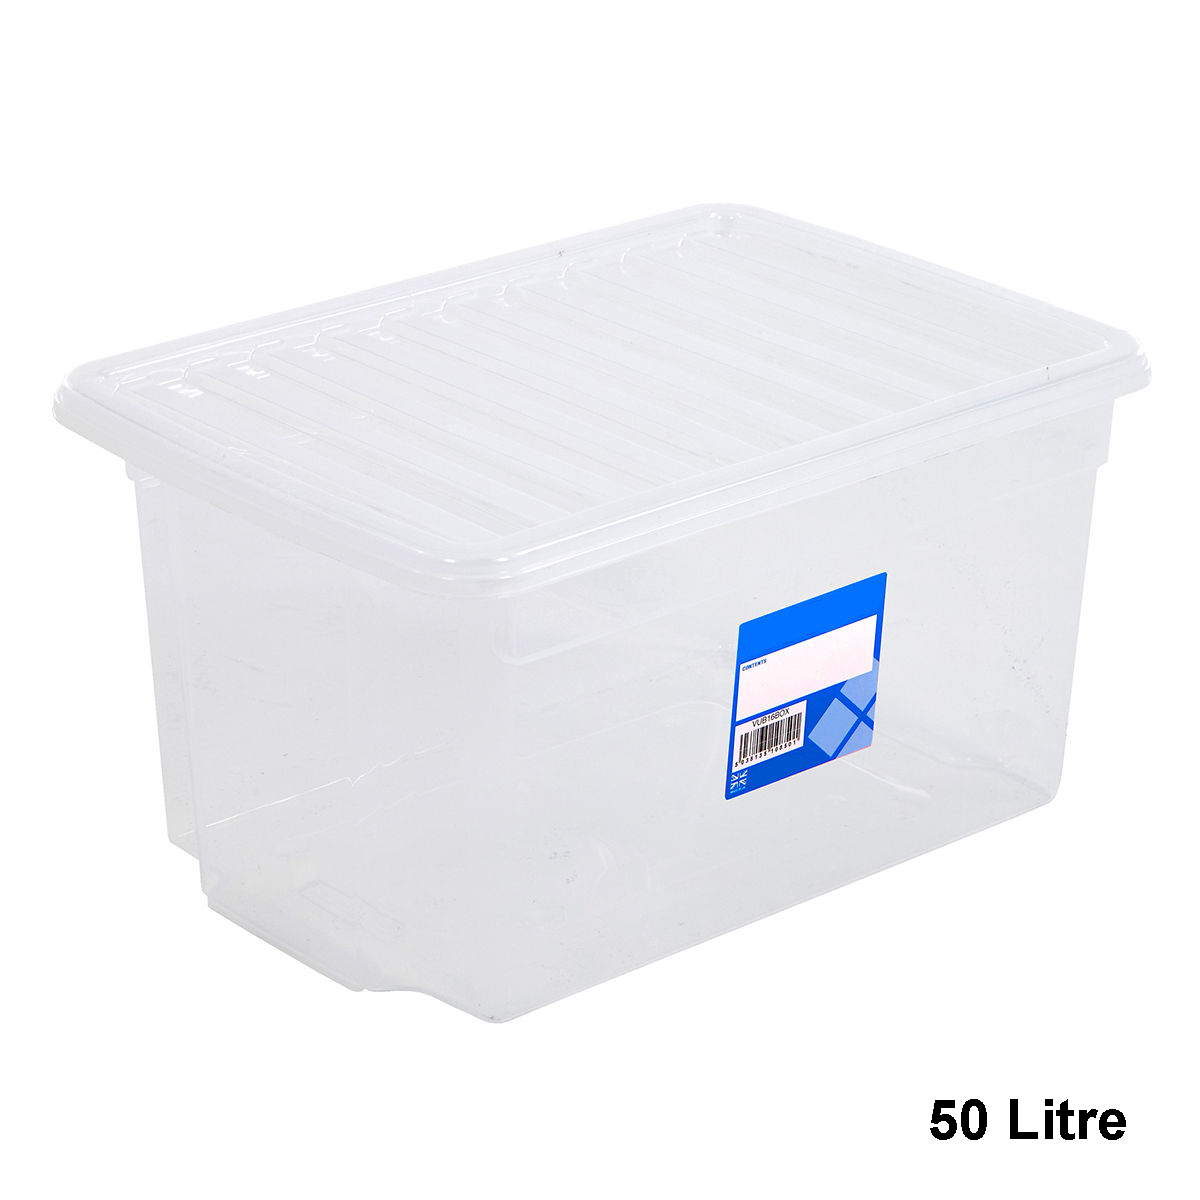 Acrylic Boxes With Lids Uk : Clear plastic storage boxes box containers with lids